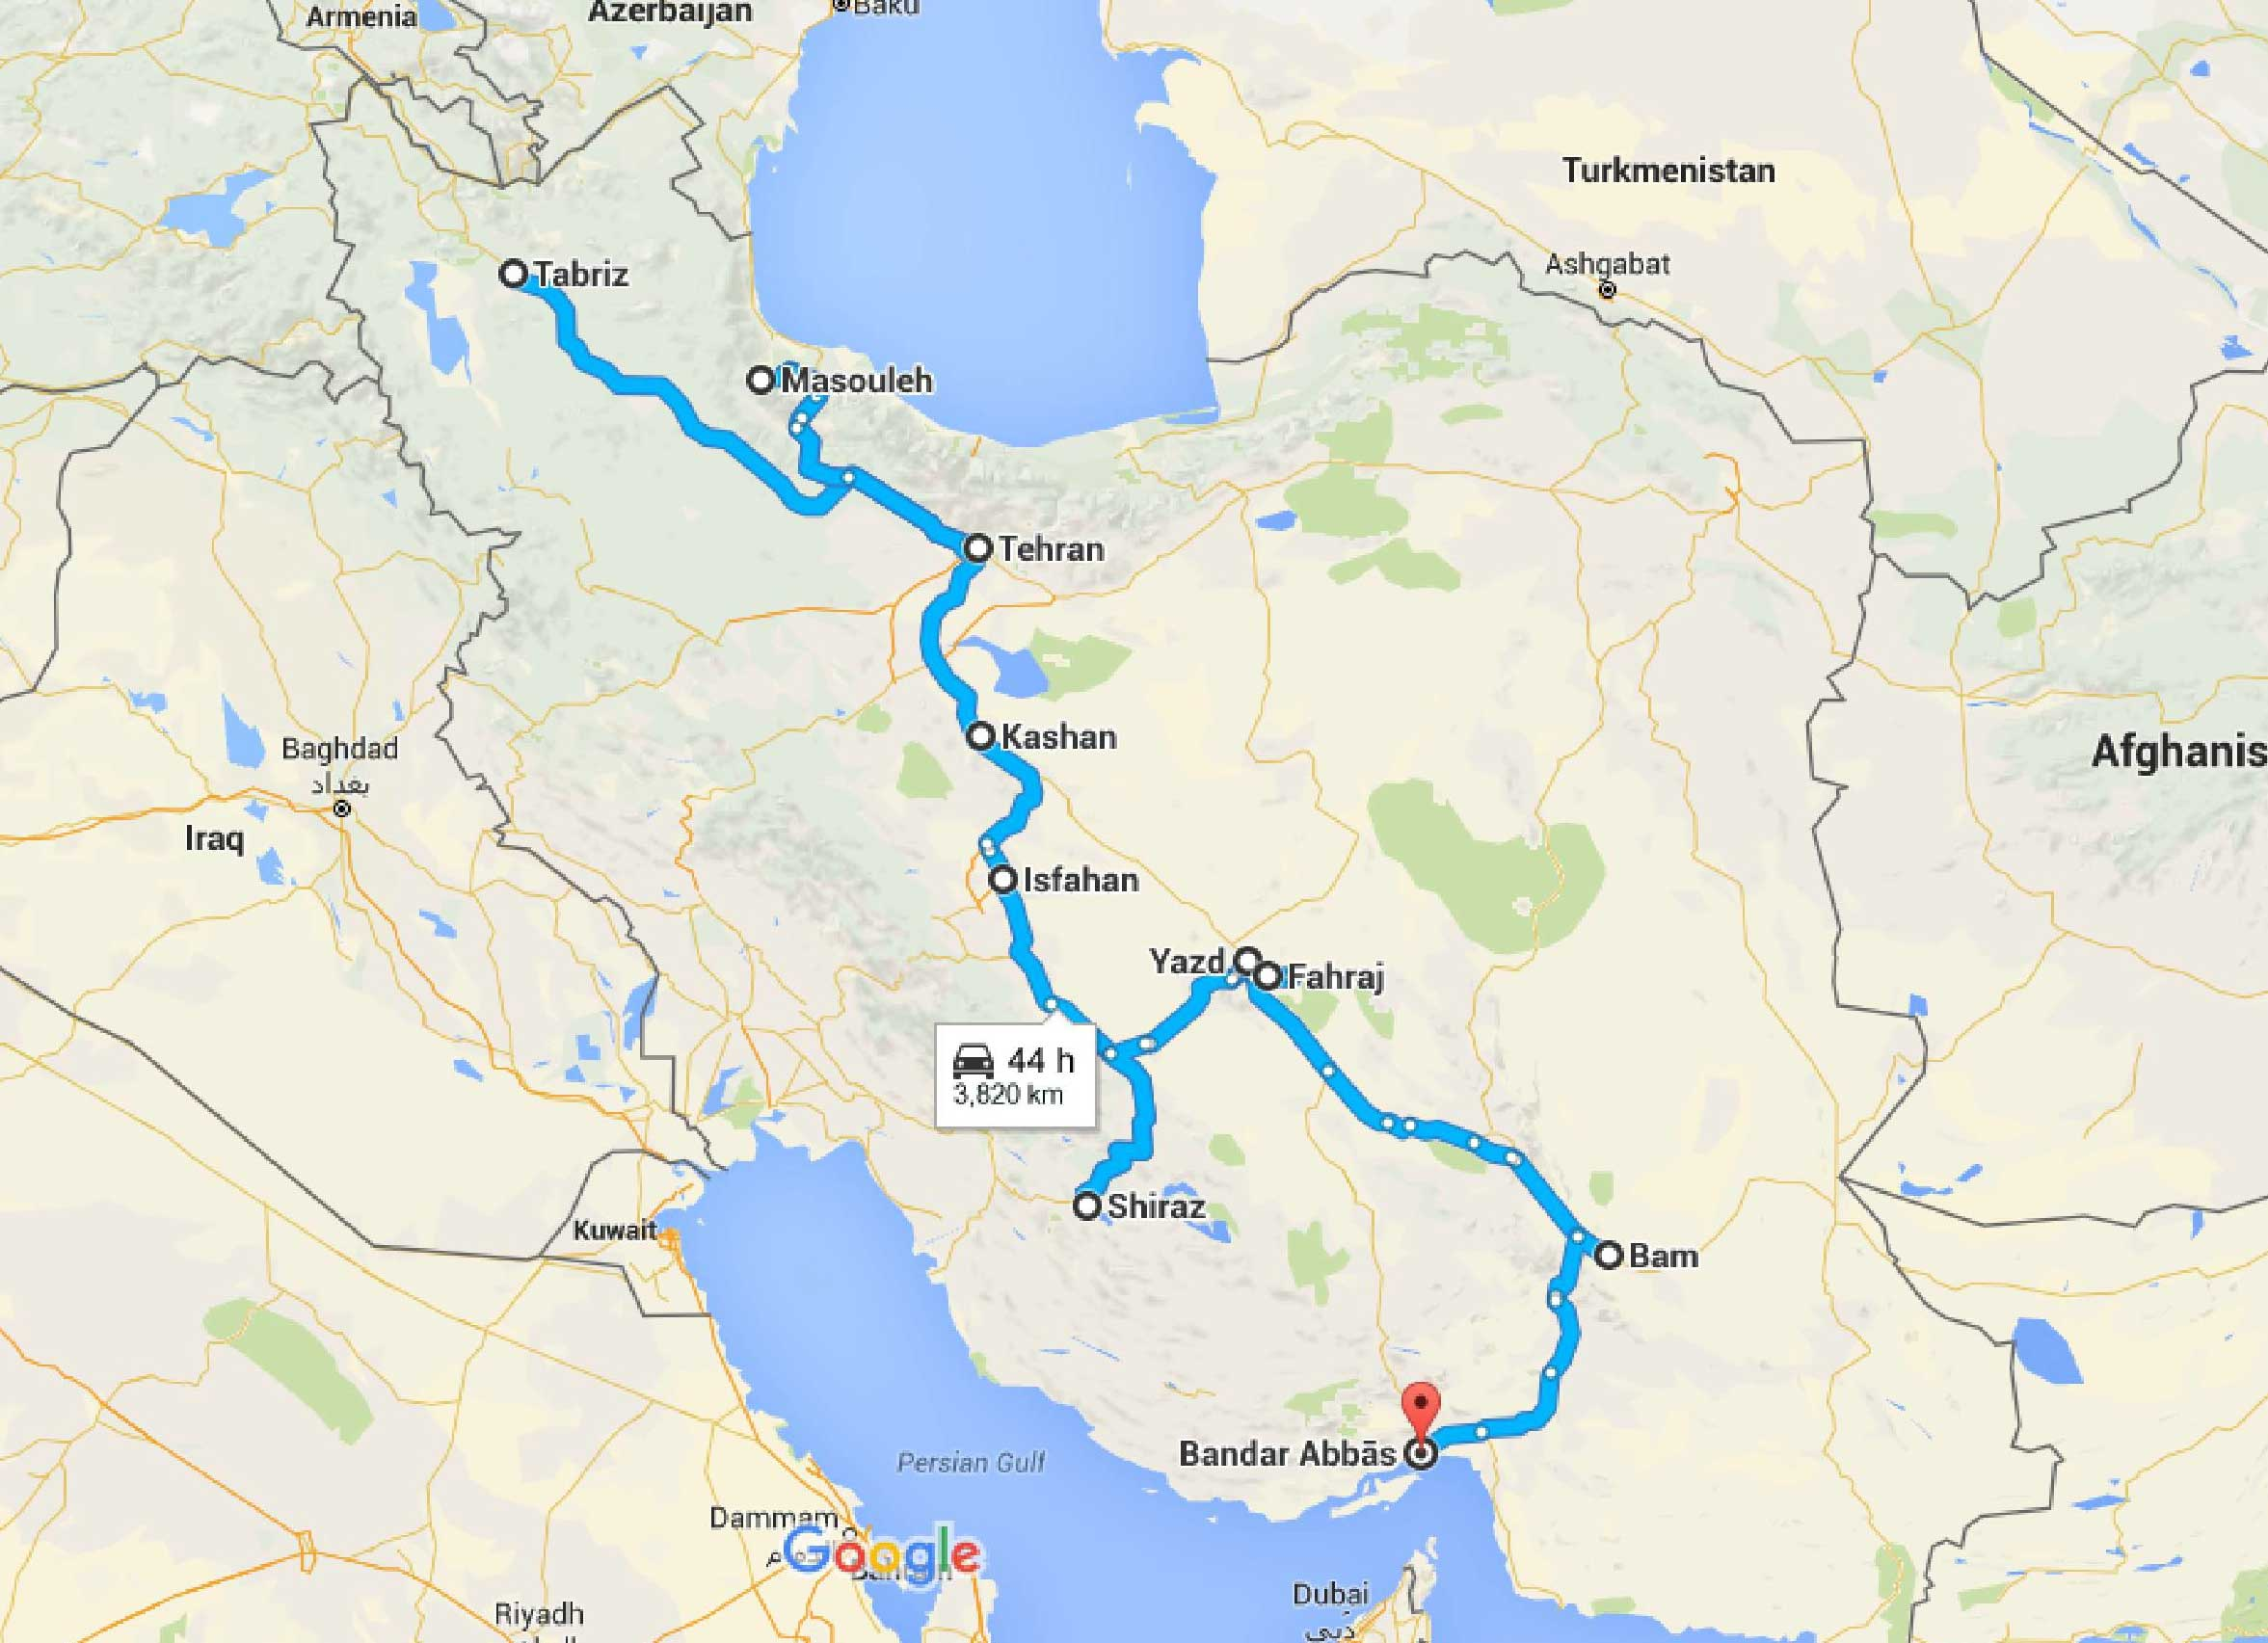 30 days in Iran: map, costs and itinerary